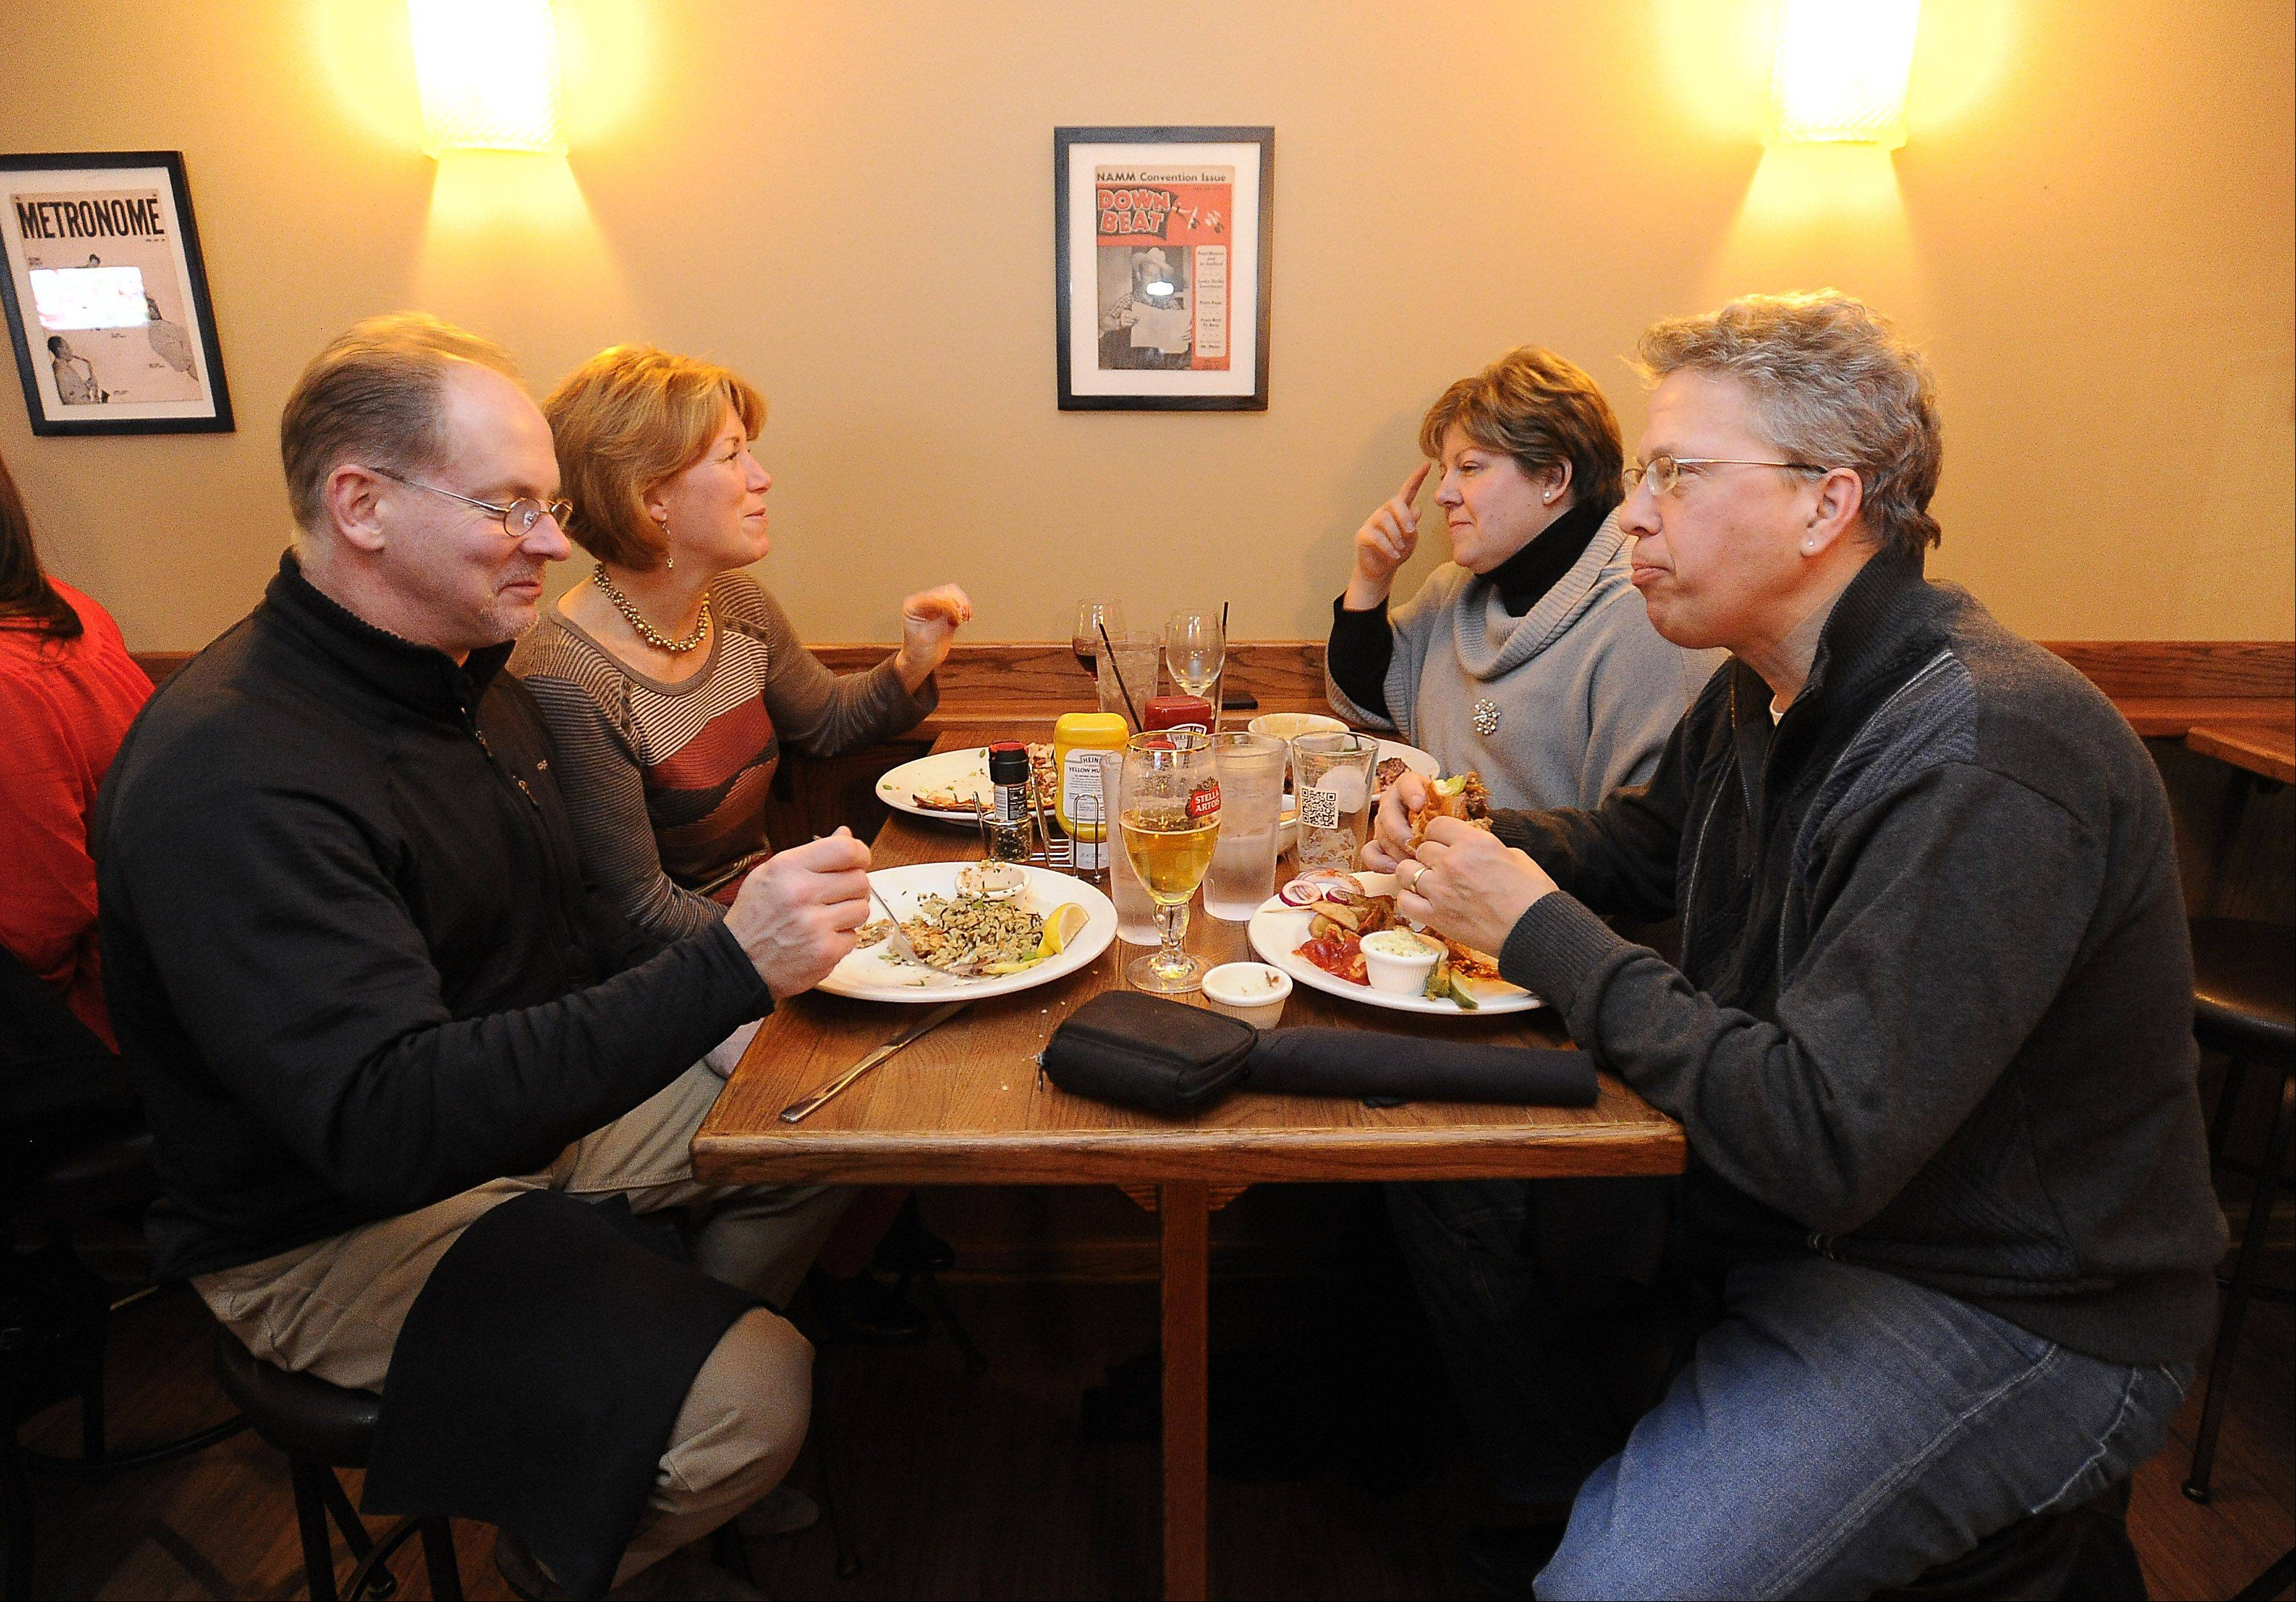 Inverness residents Kurt and Joanne Konrath, right, and Dick and Lisa Laniers enjoy dinner at Mac's on Slade in Palatine.